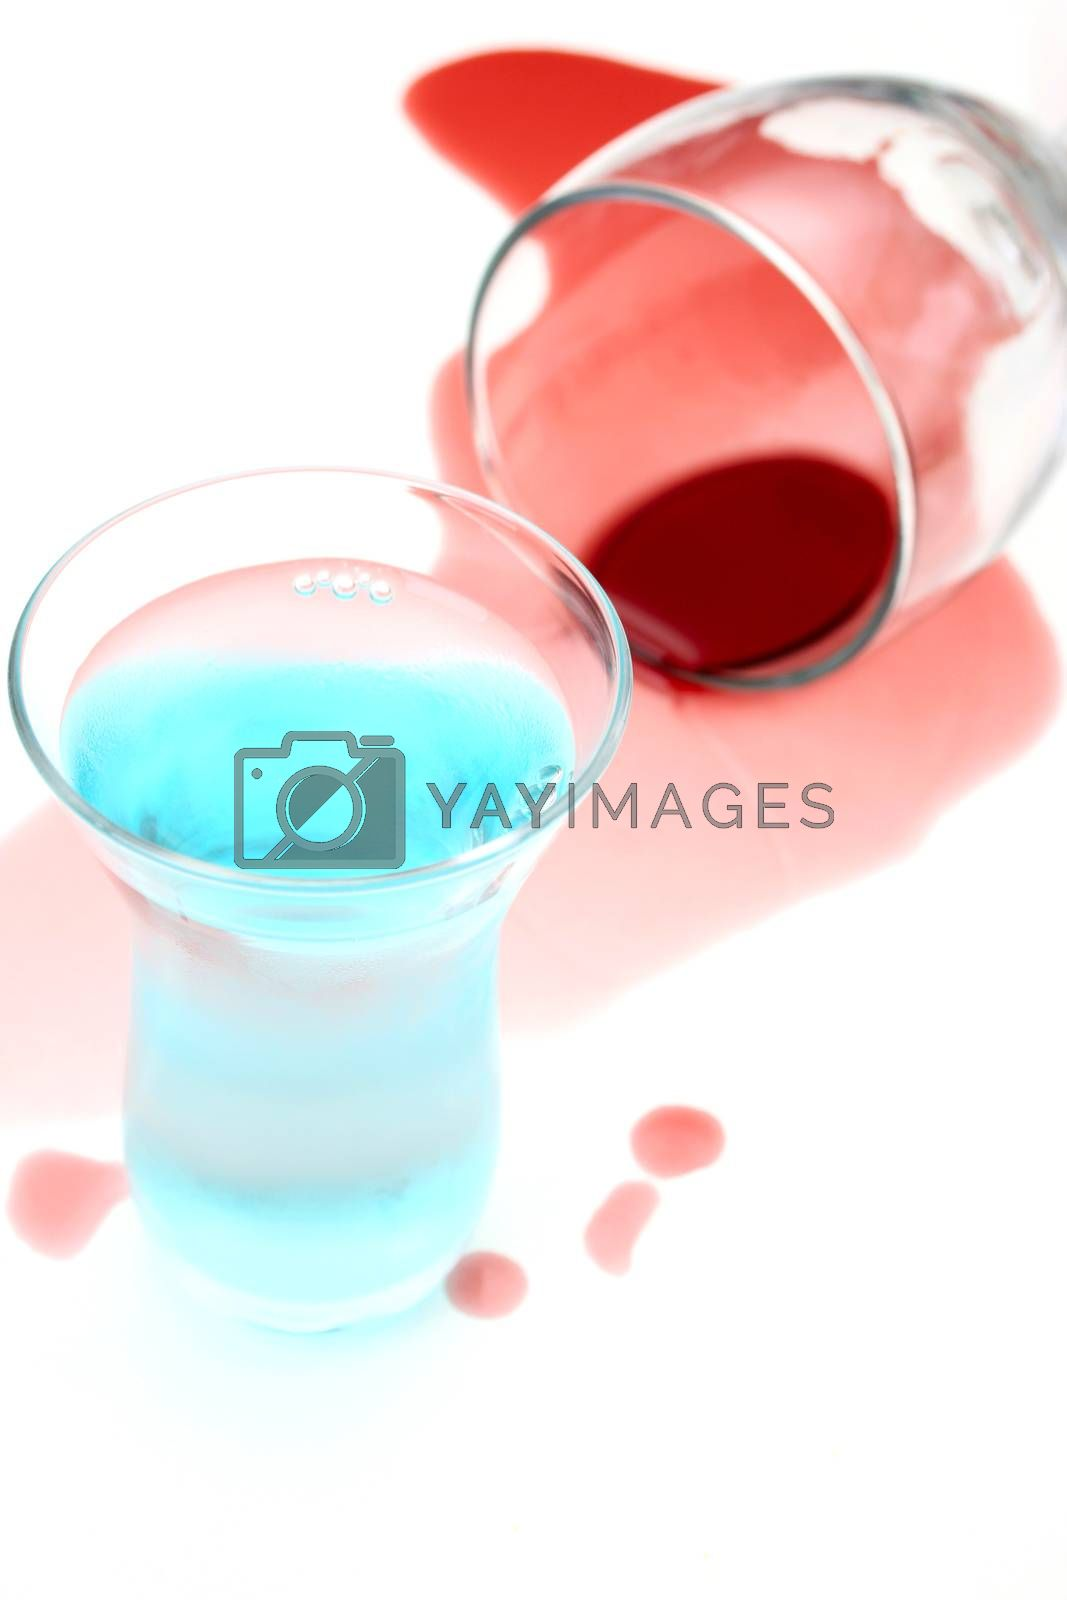 Spilled wine and a shot glass on a white background